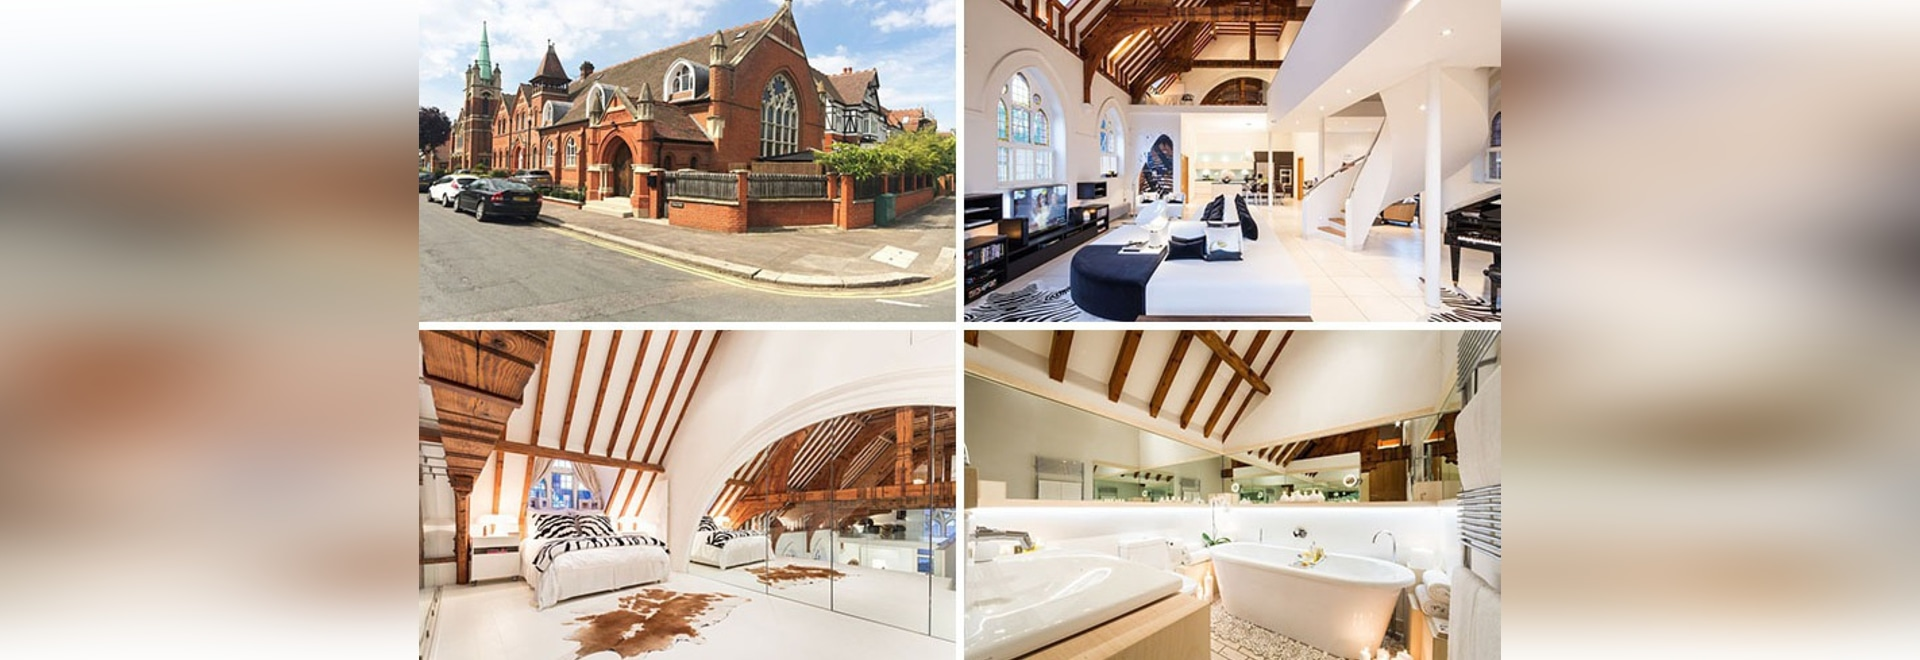 This old church was converted into a bright and contemporary house